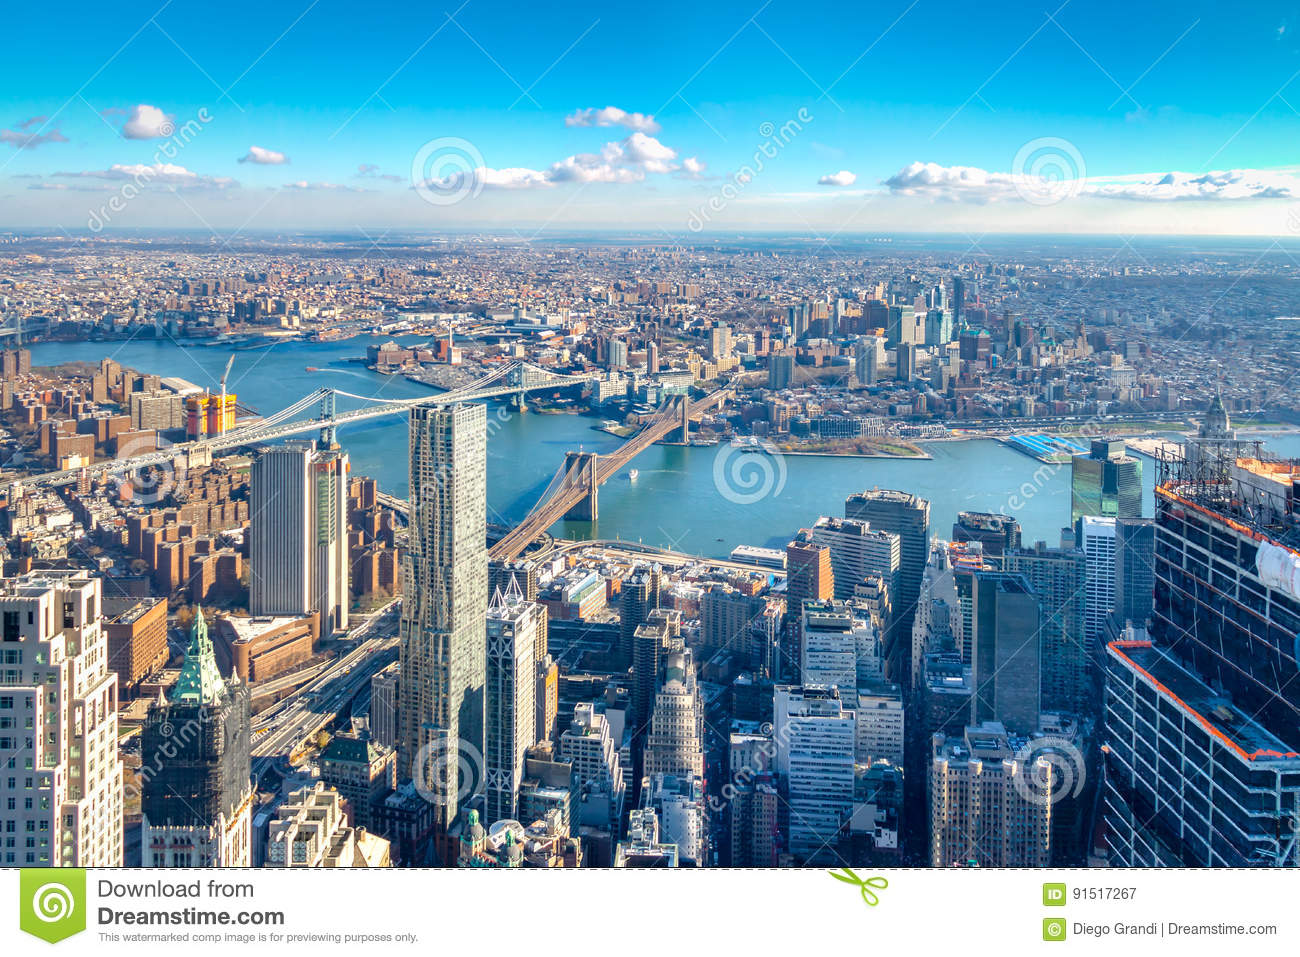 Skyline aerial view of Manhattan with skyscrapers, East River, Brooklyn Bridge and Manhattan Bridge - New York, USA